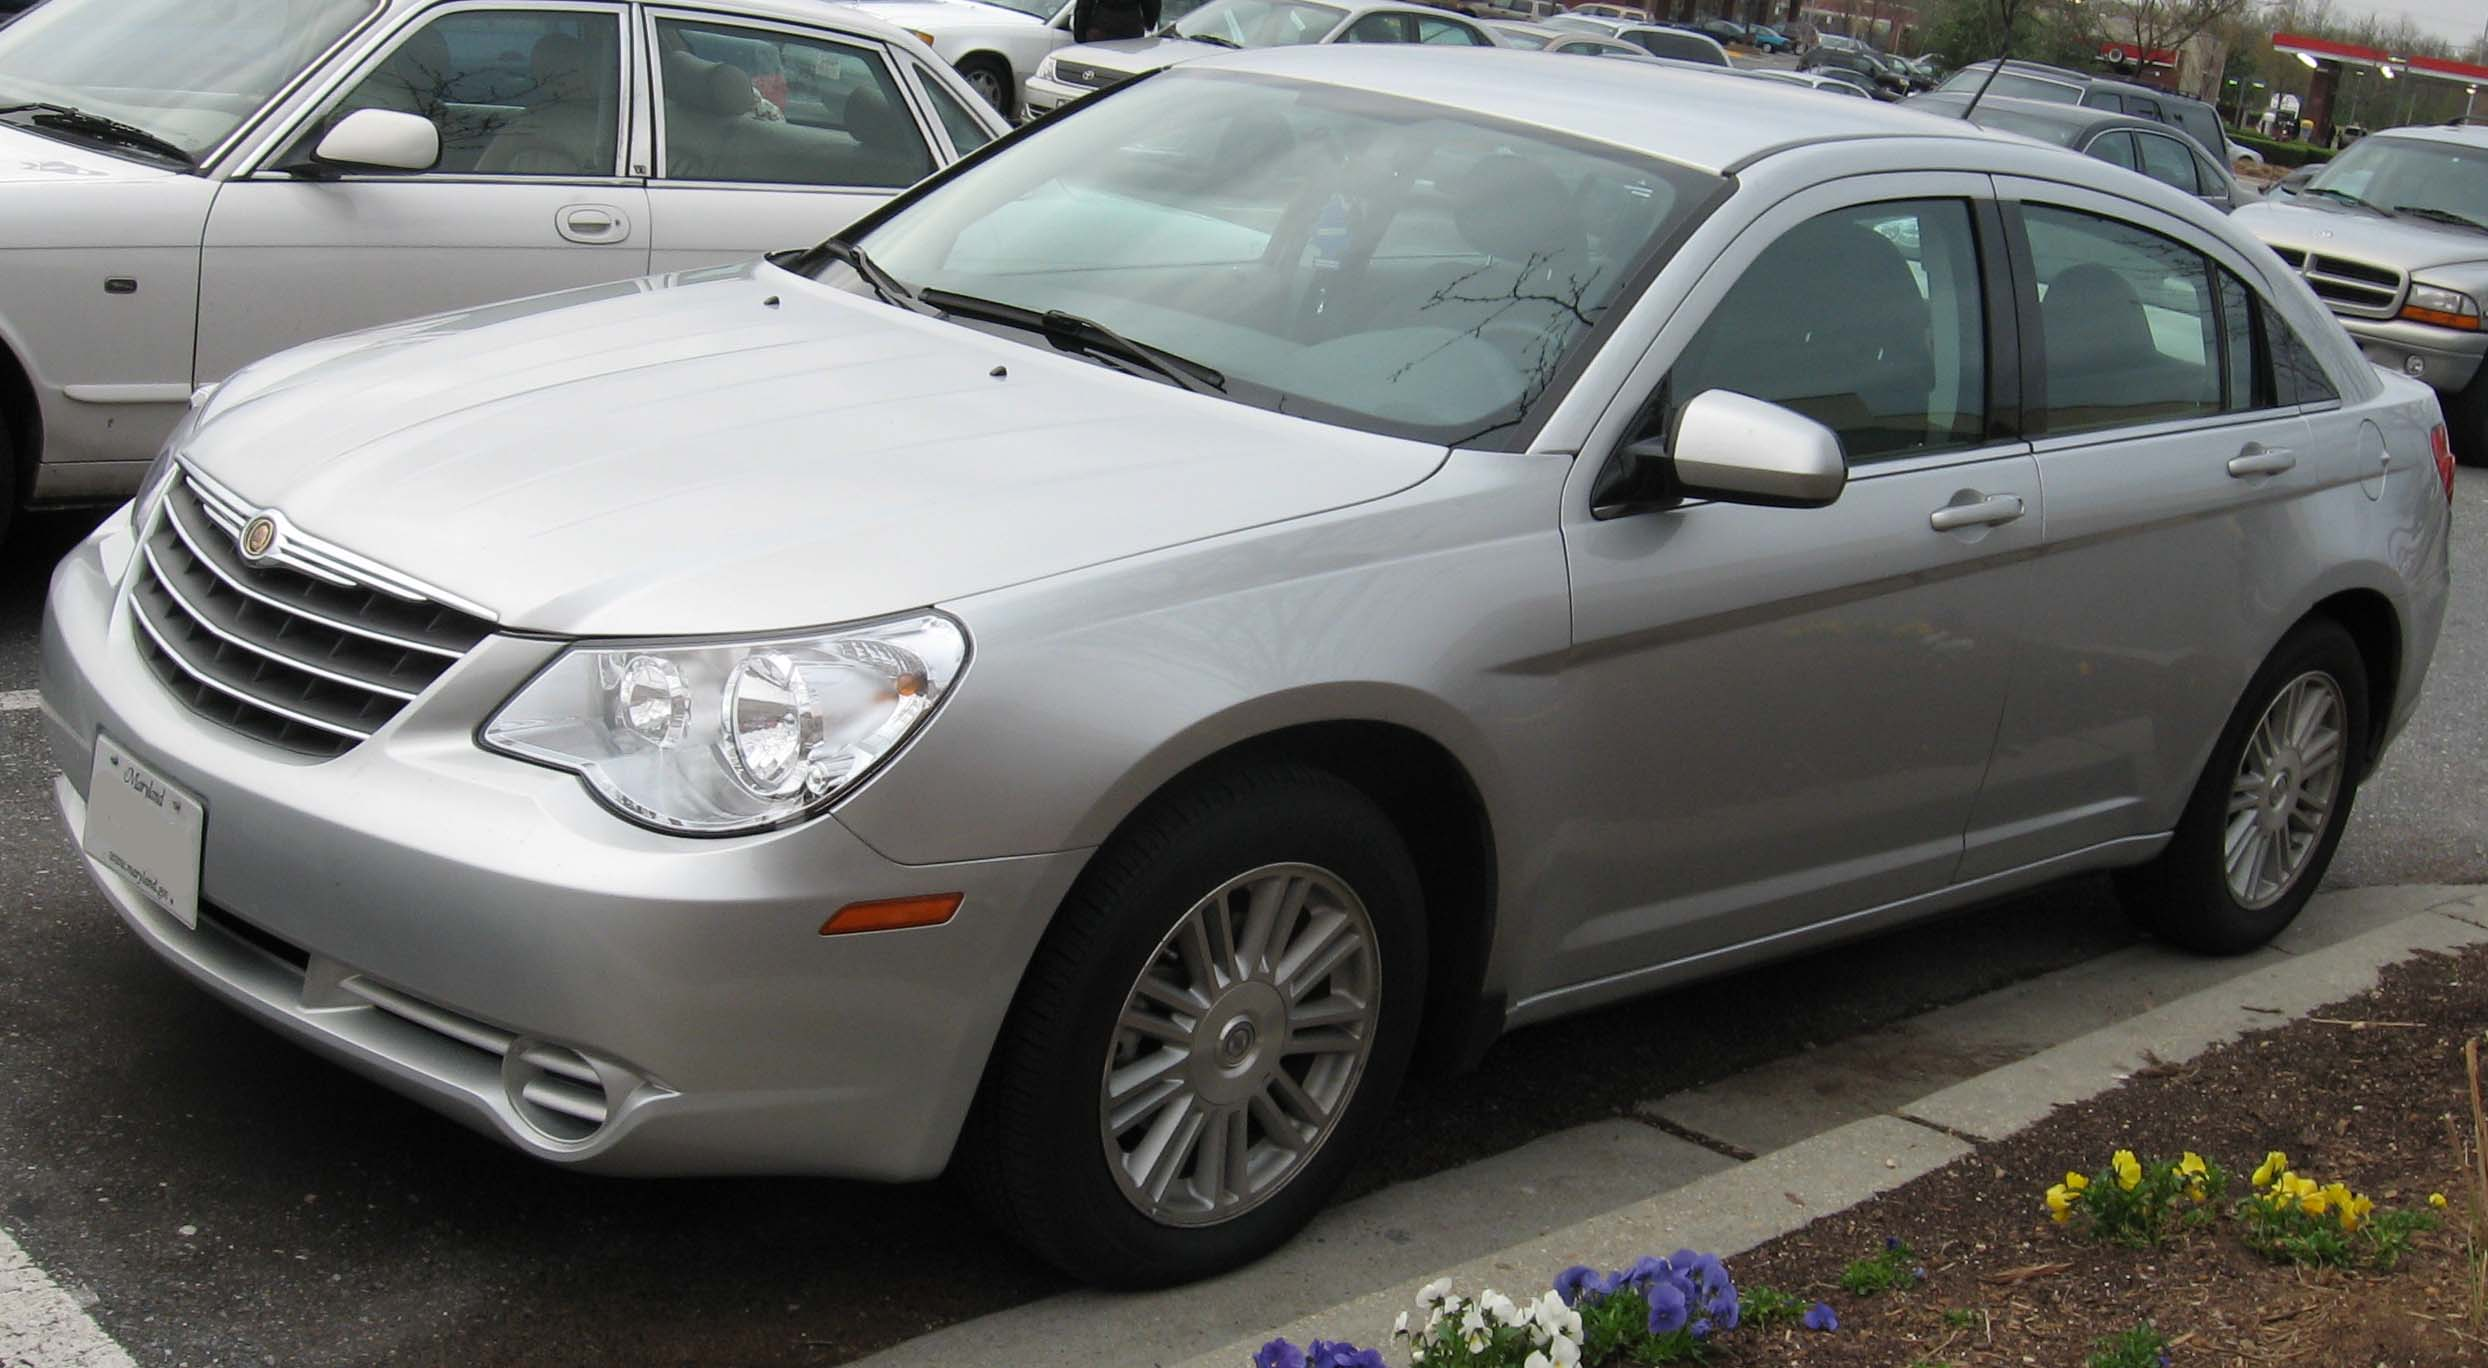 2007 Chrysler Sebring #13